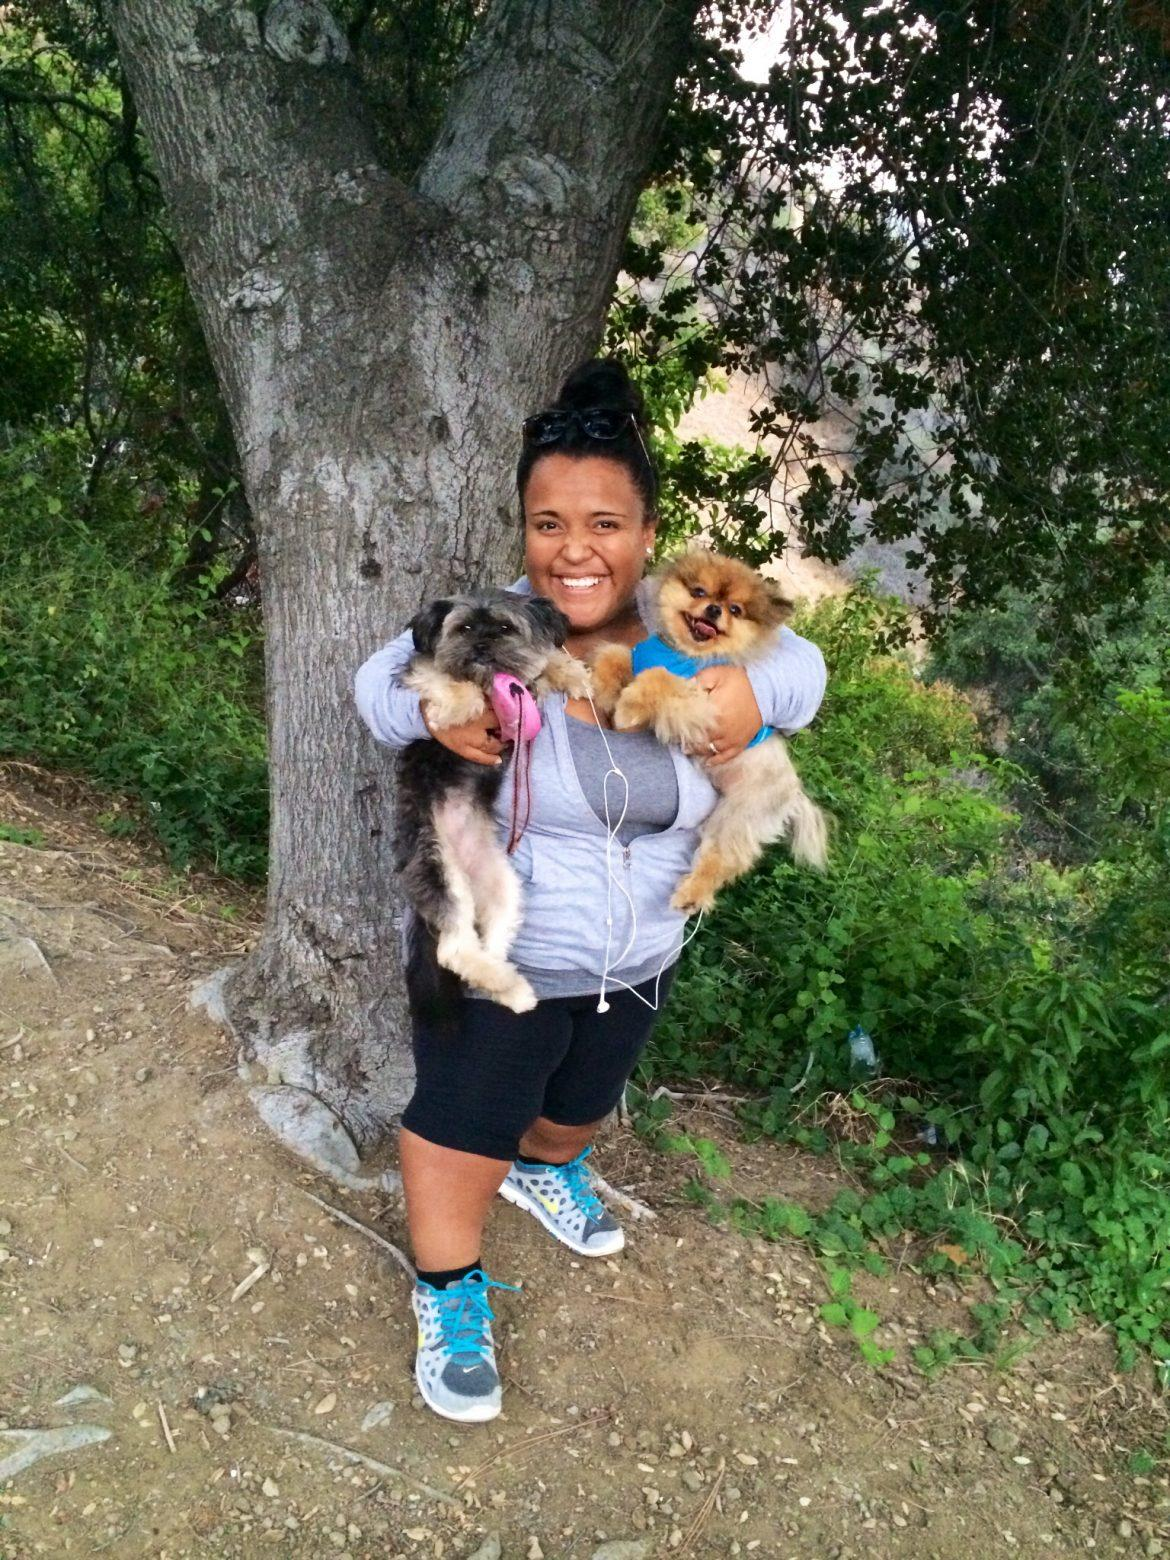 woman in workout clothes happily hold two dogs in her arms